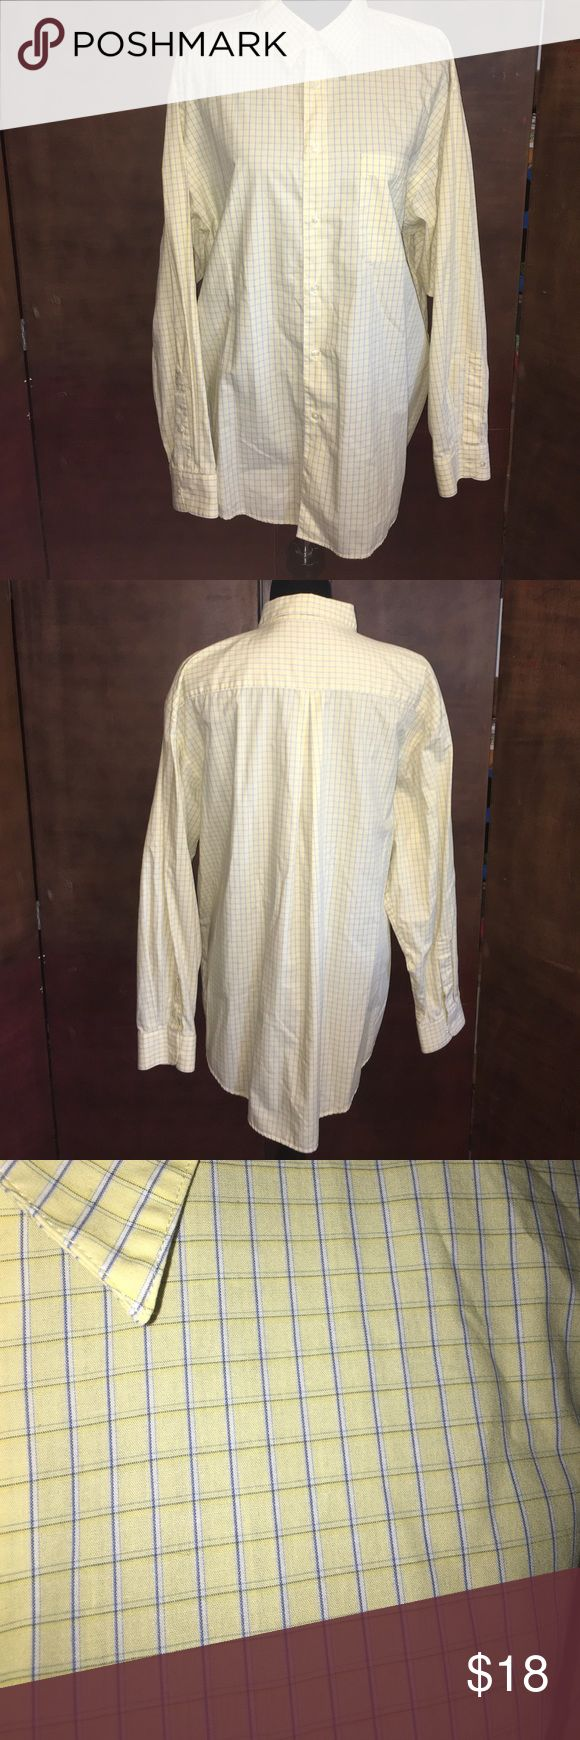 Arrow Pale Yellow and Blue Long Sleeve Dress Shirt Arrow Pale Yellow and Blue Long Sleeve Button Down Dress Shirt. Gently used. Measures approx 27 inches long.  Checkout my ties as well.  Bundle and save on shipping! Arrow Shirts Dress Shirts